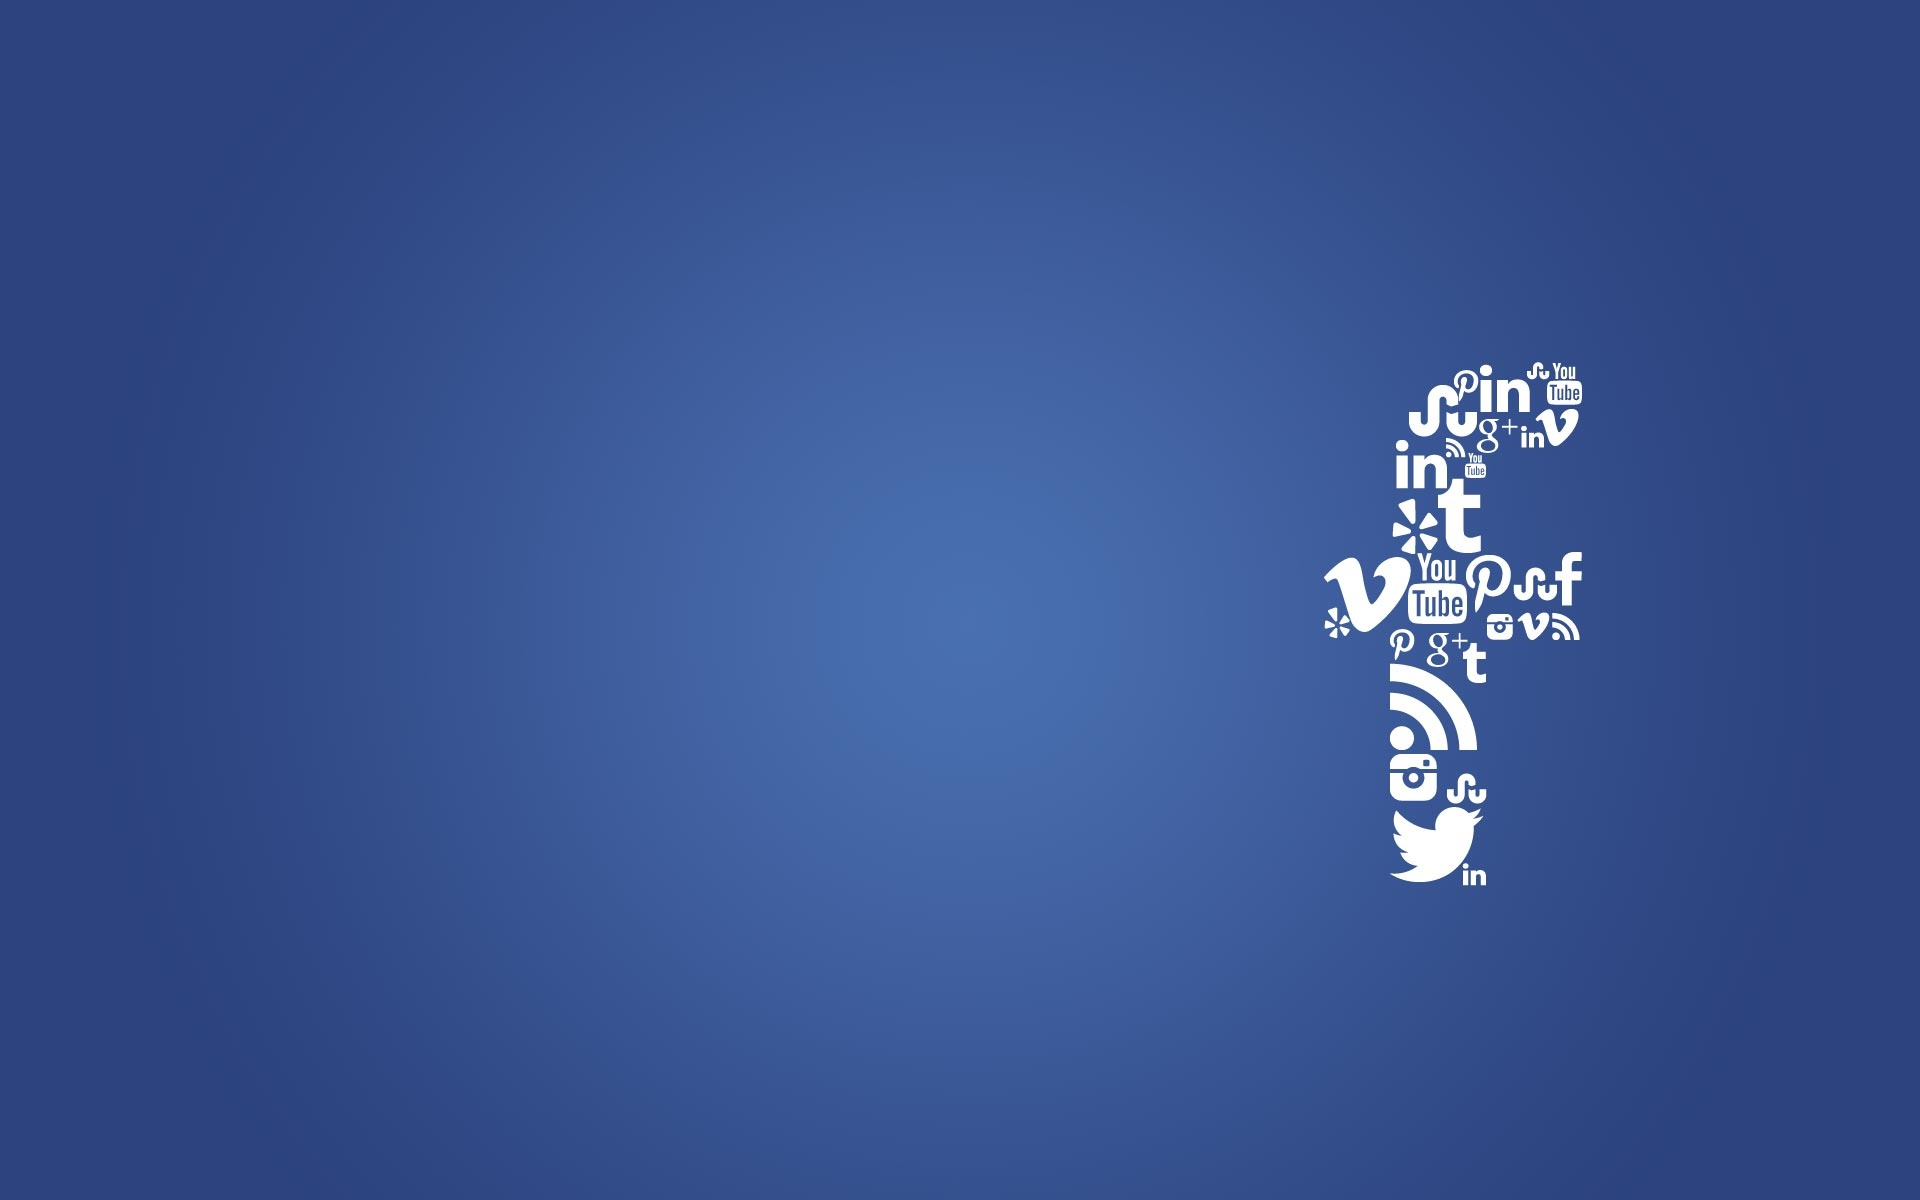 facebook social media wallpaper 62720